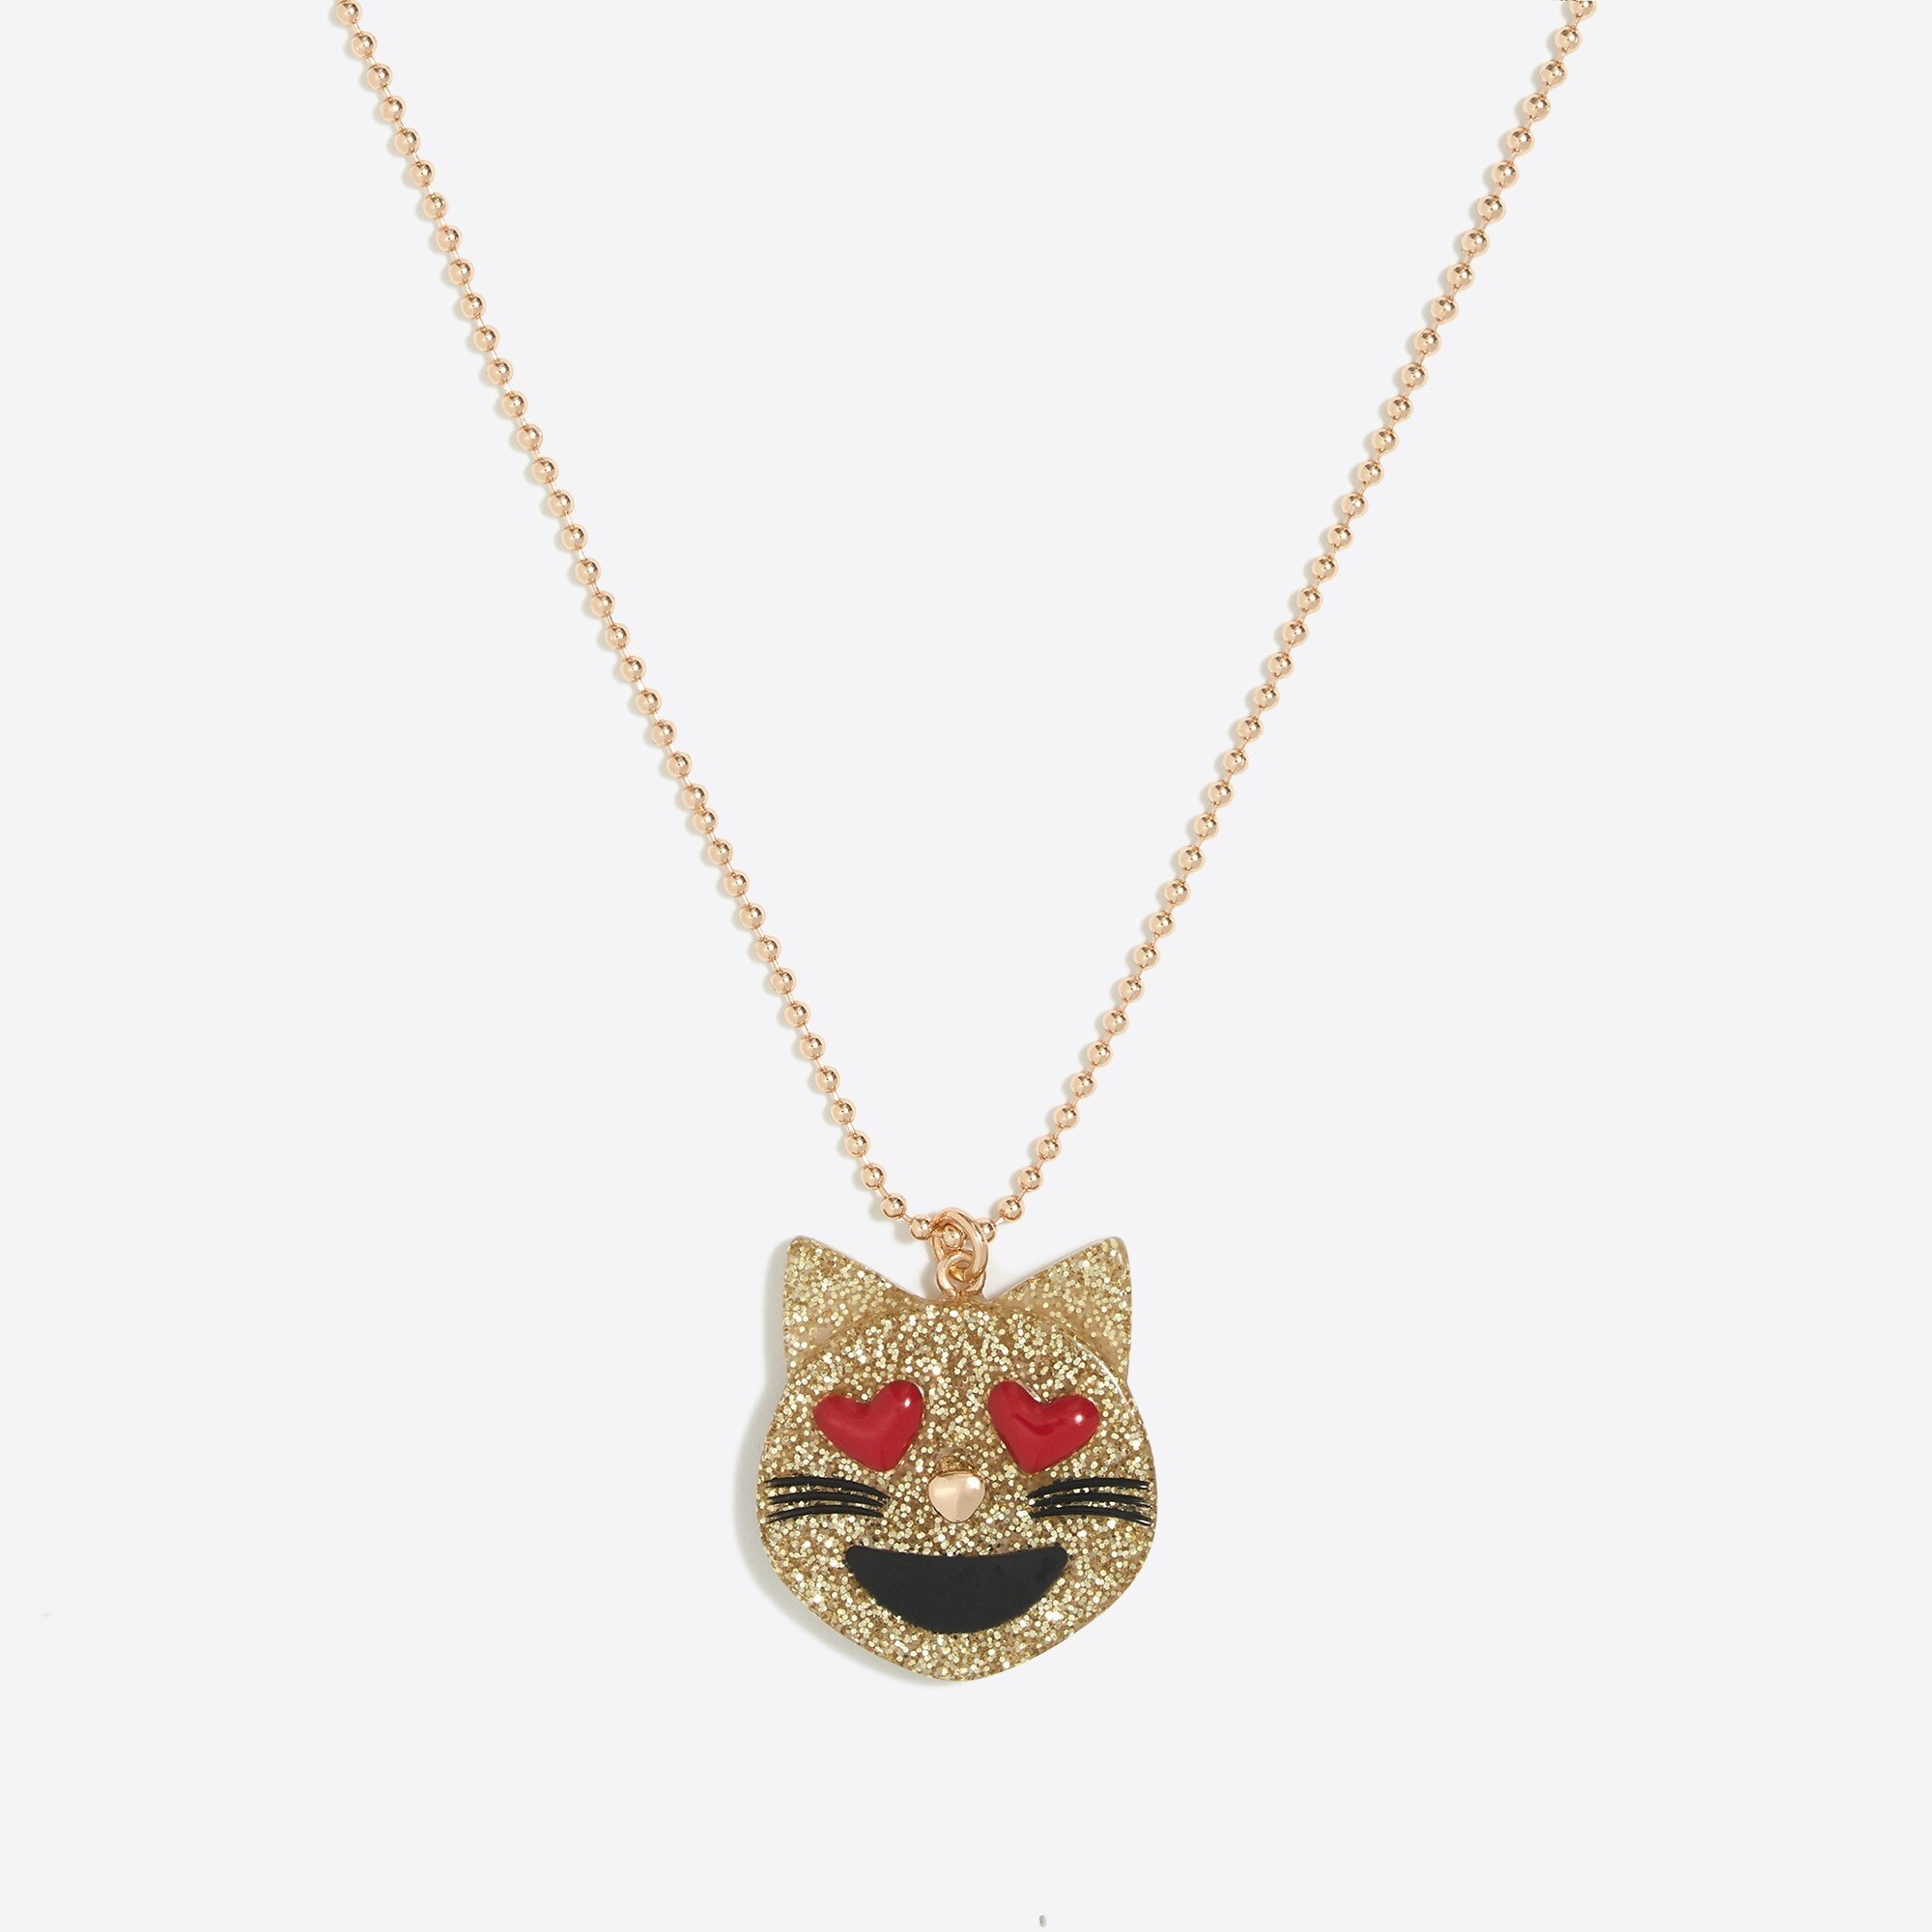 Girls' emoji pendant necklace